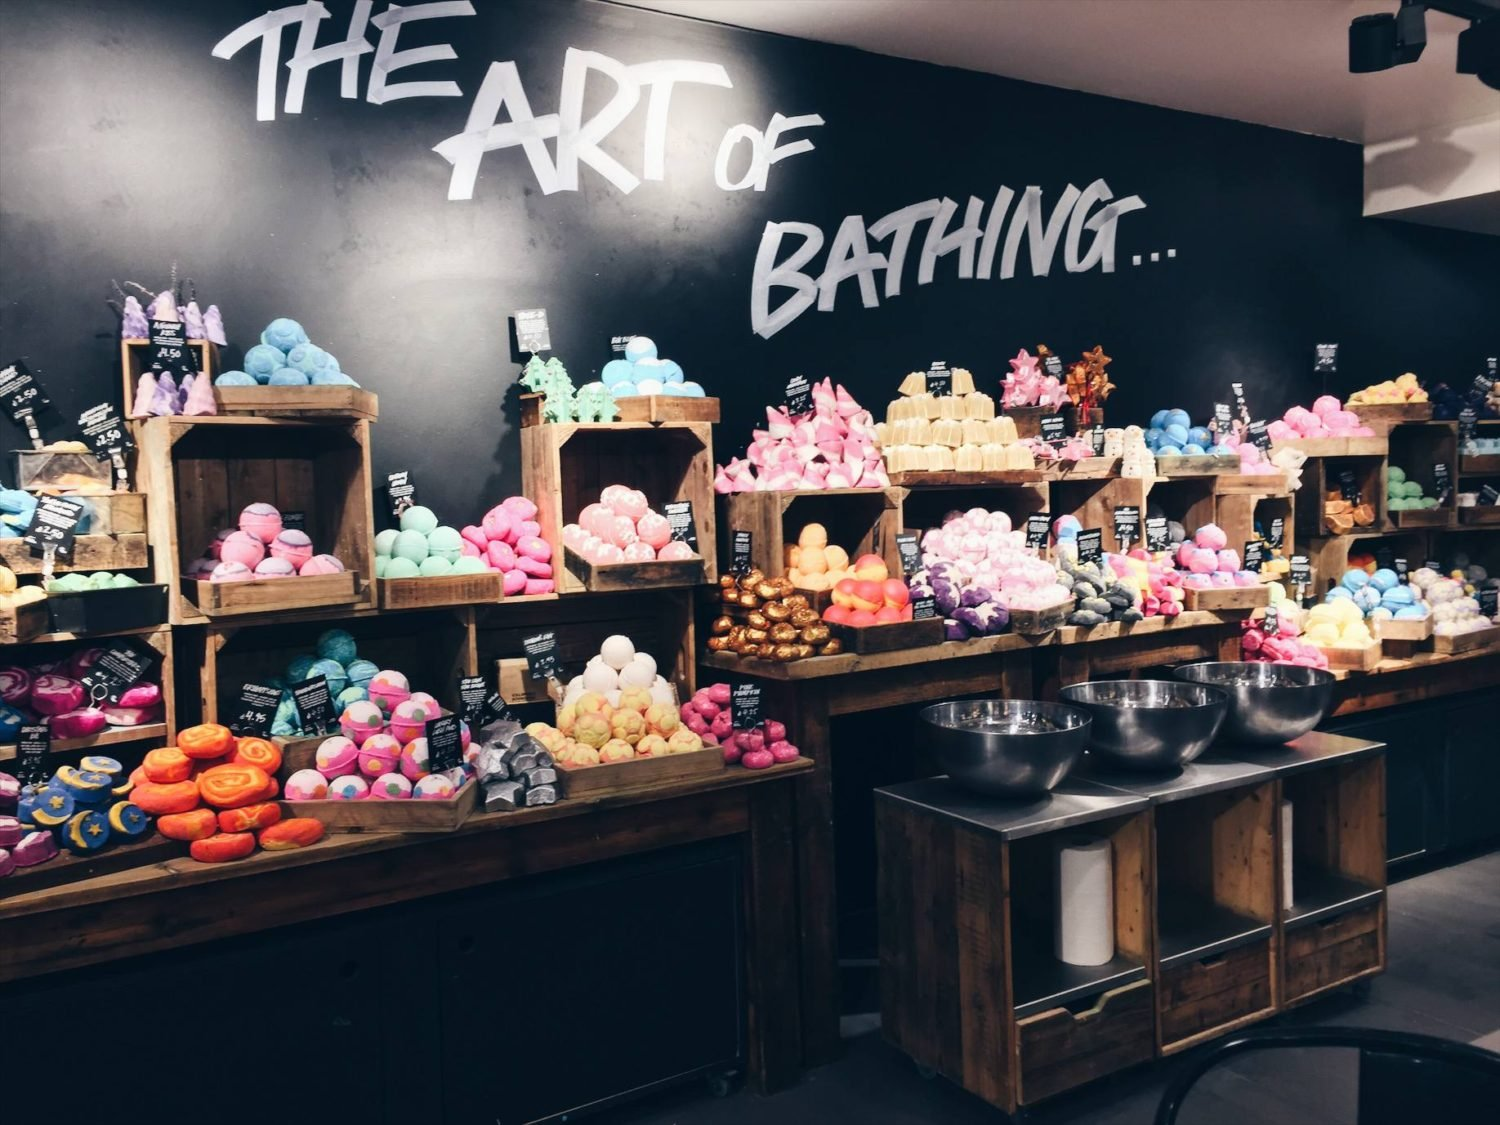 Festive bath bombs from Lush